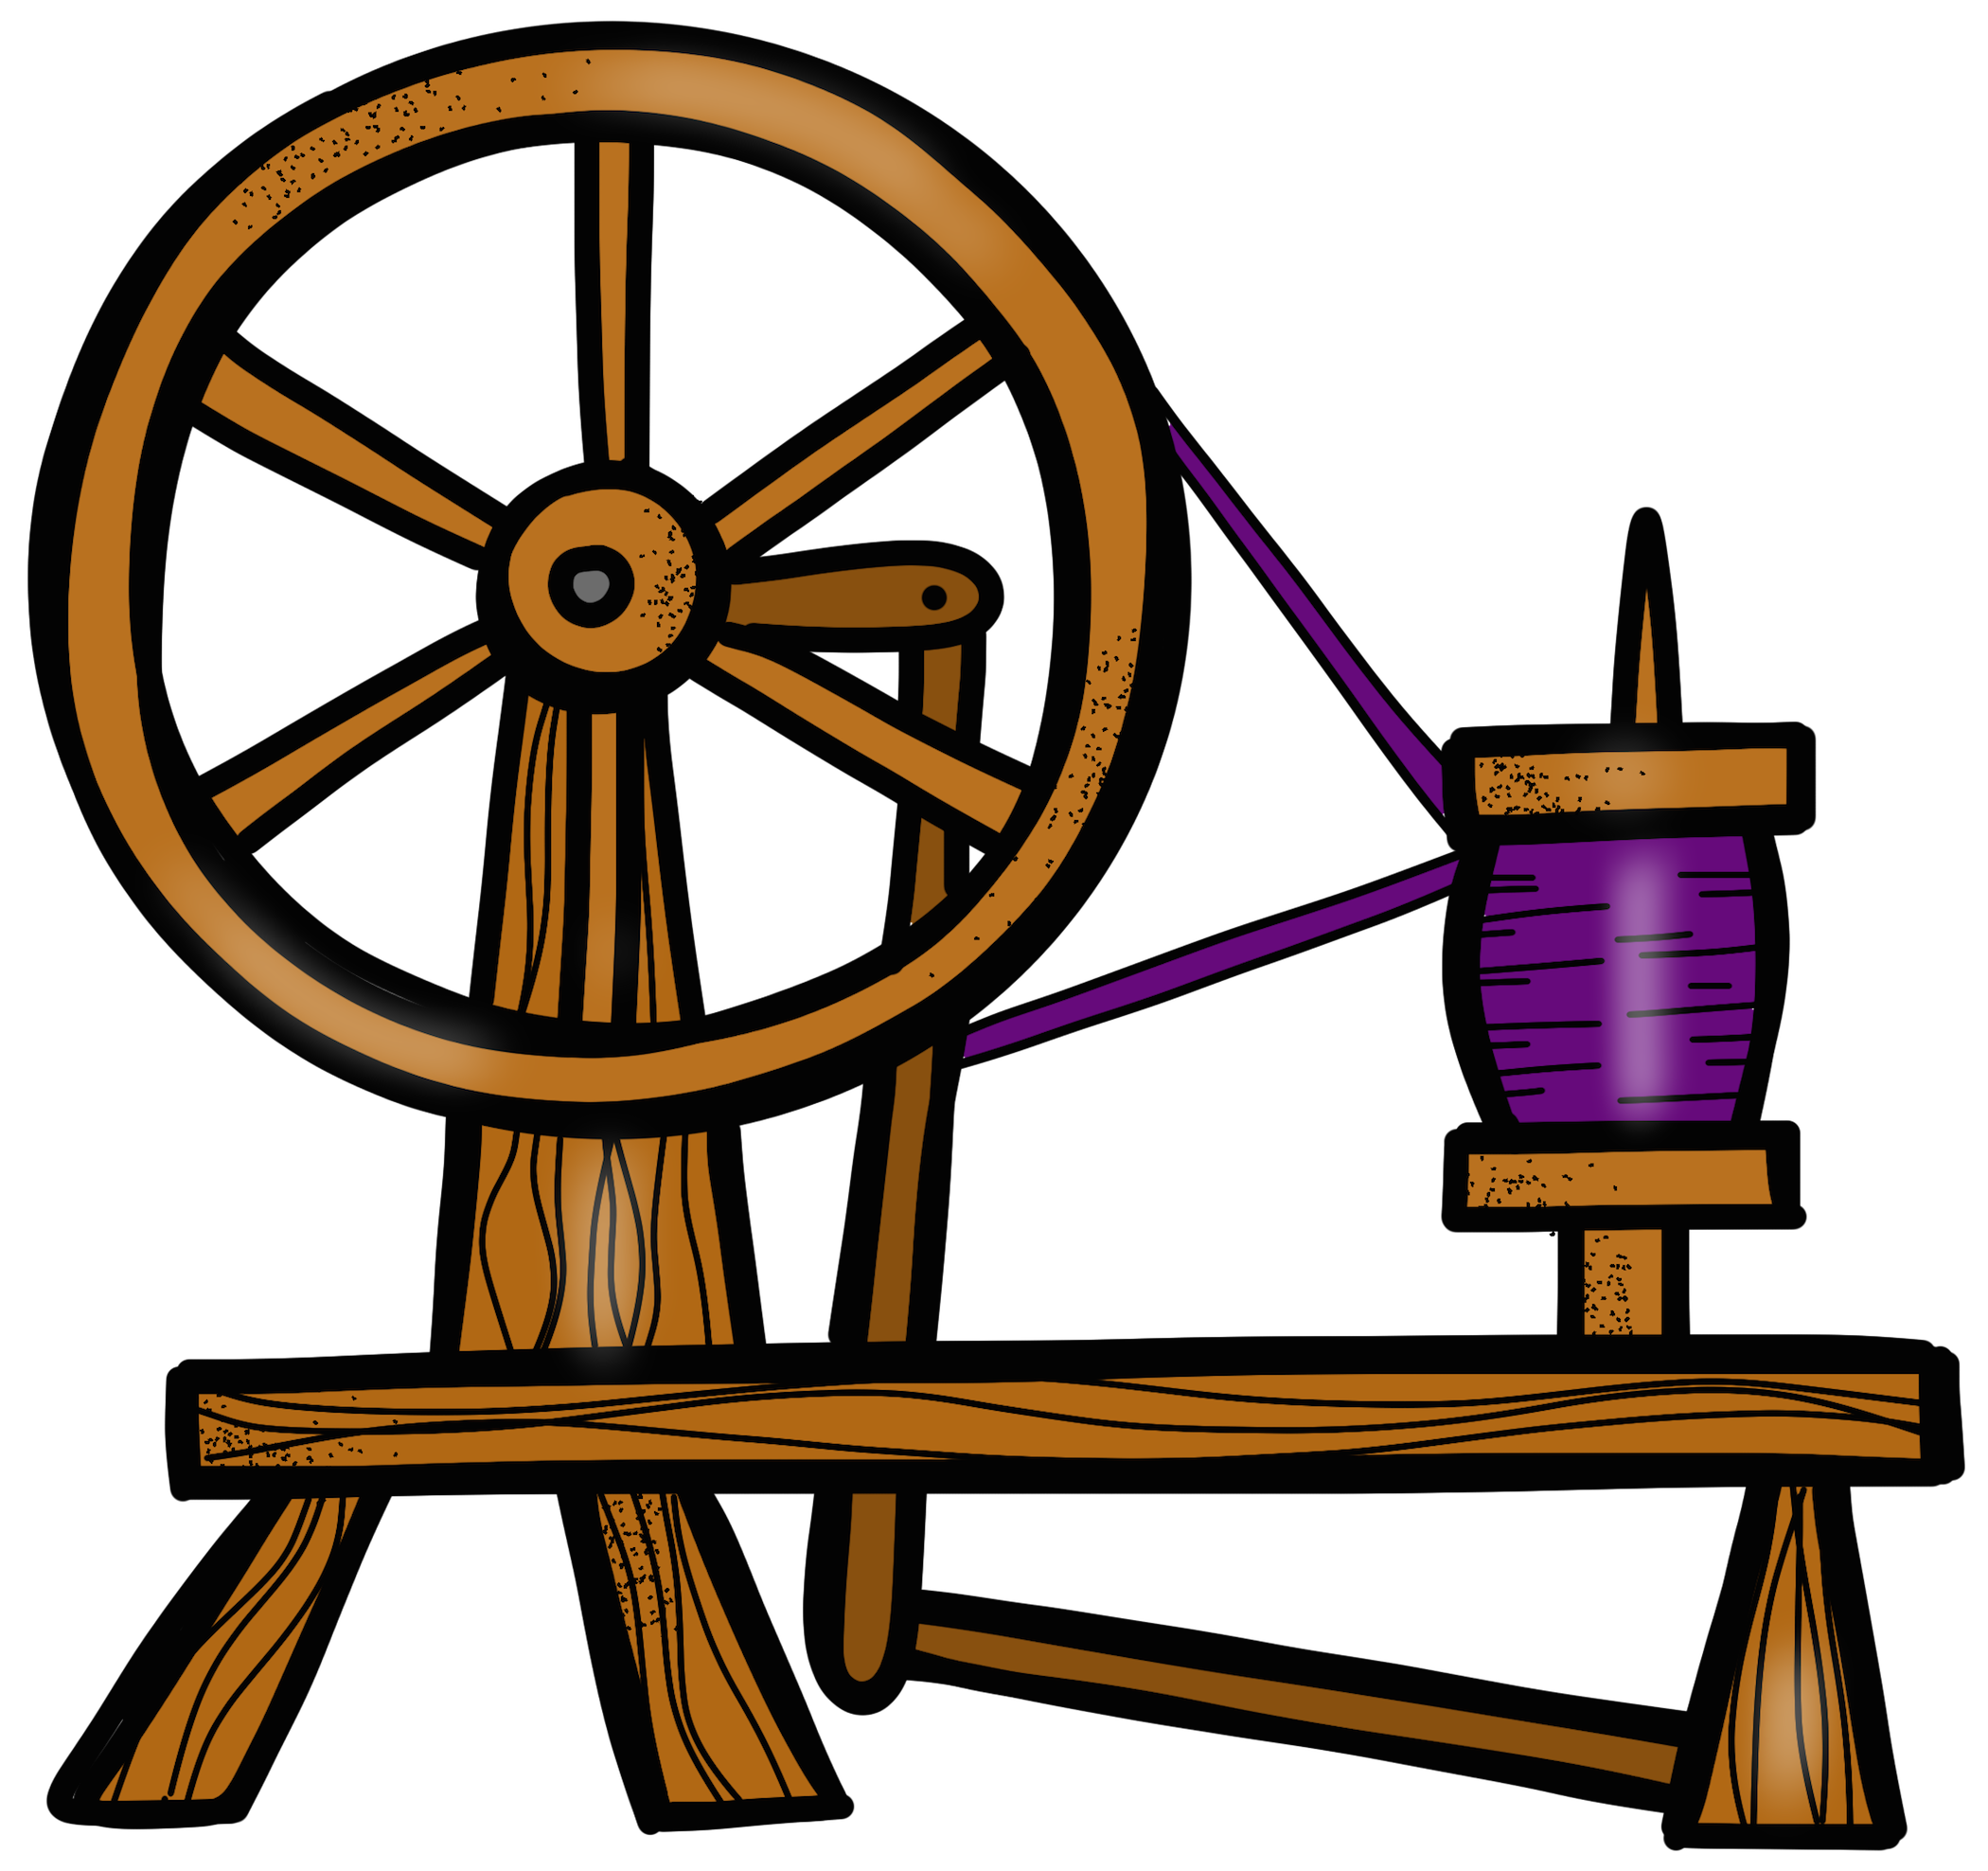 svg freeuse stock Sleeping beauty spindle clip. Spinning wheel clipart.